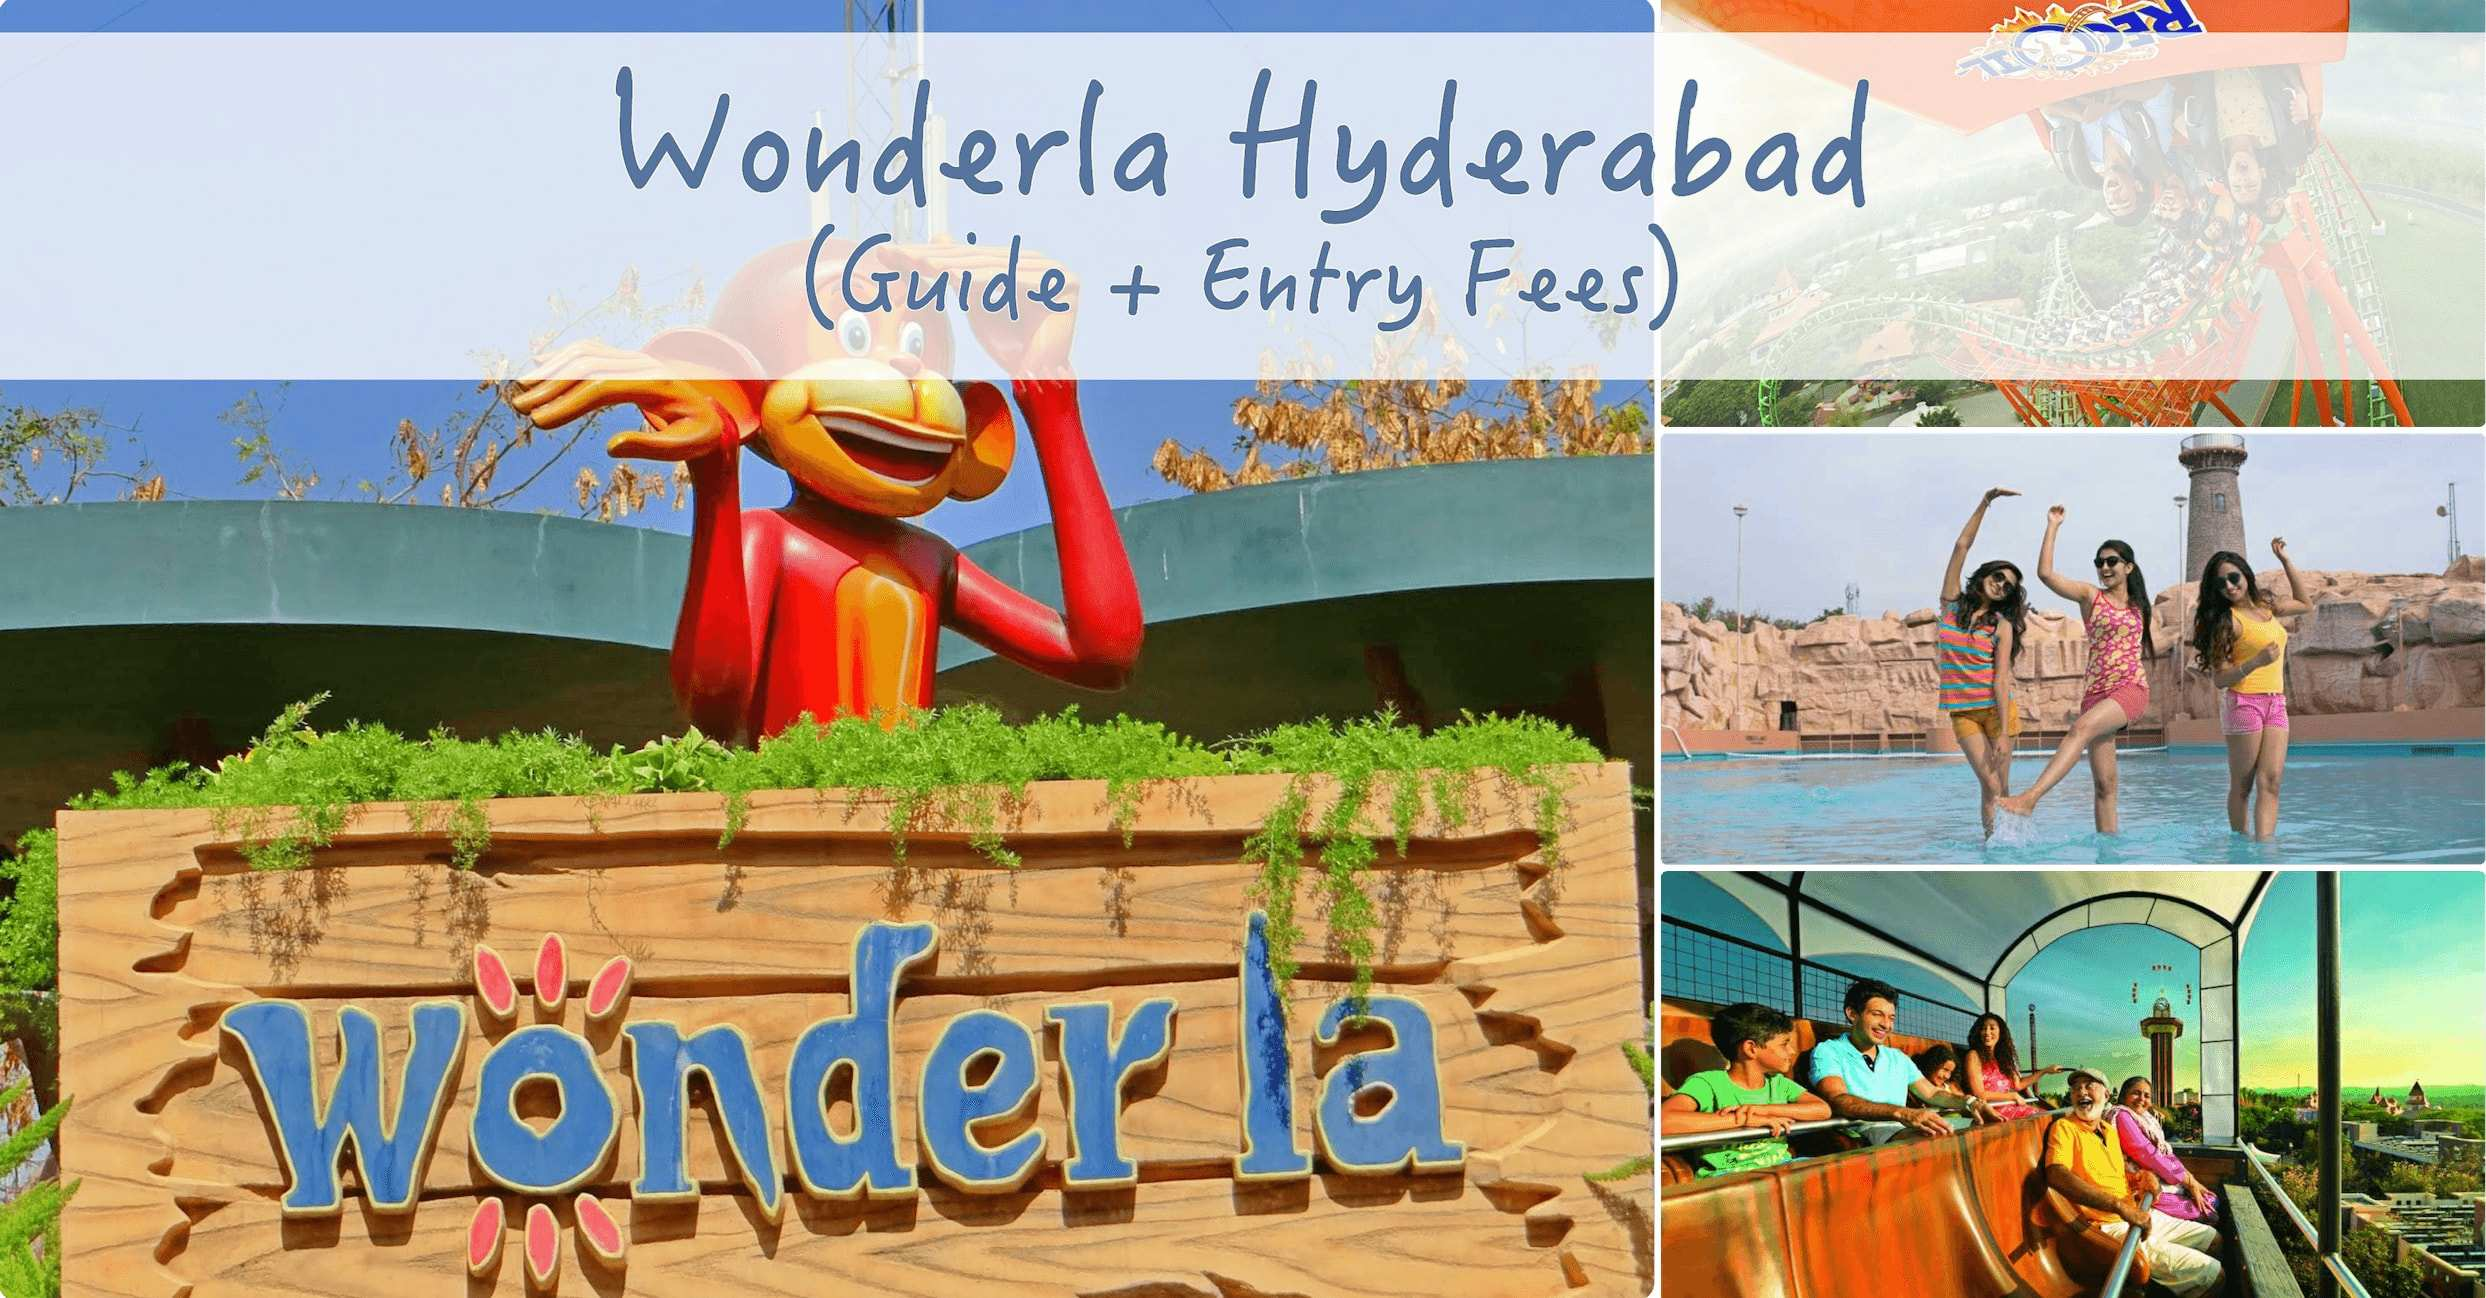 Wonderla-Amusement-Park-entry-fee-Hyderabad.jpg